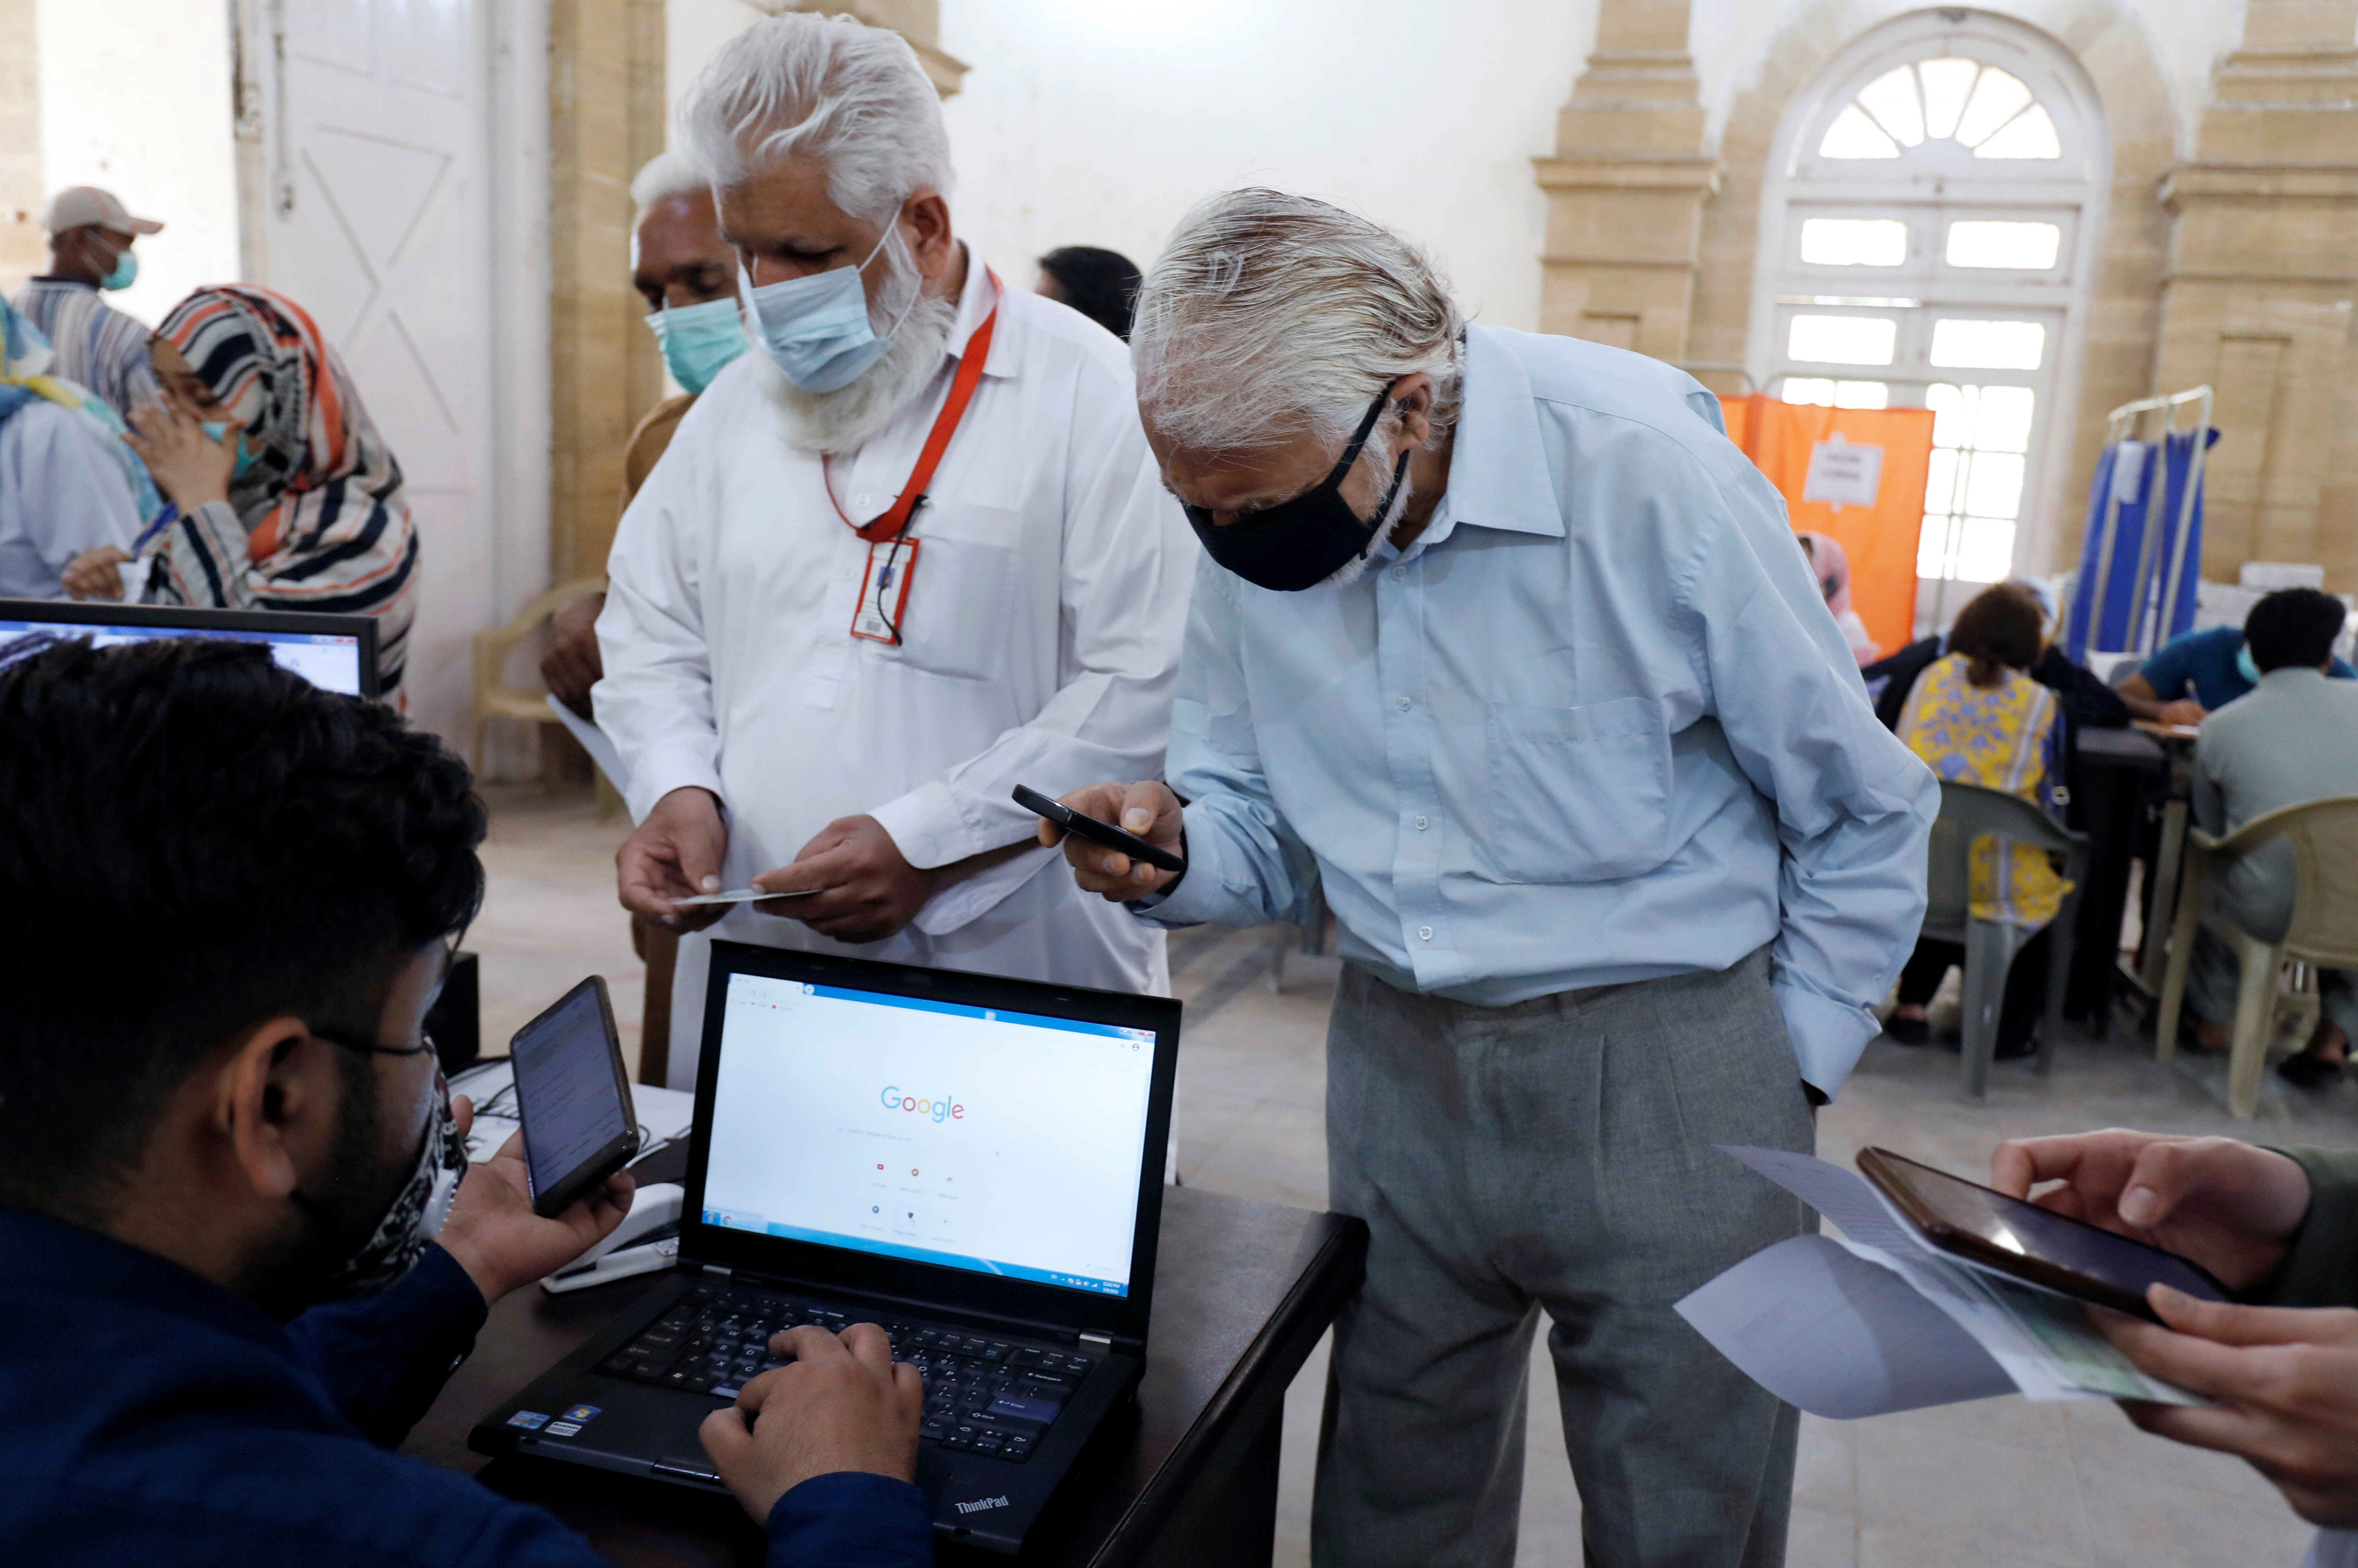 Residents check-in for their dose of the coronavirus disease (COVID-19) vaccine, as the government started vaccination for the general public, starting with elderly people, at a vaccination center in Karachi, Pakistan March 10, 2021. REUTERS/Akhtar Soomro